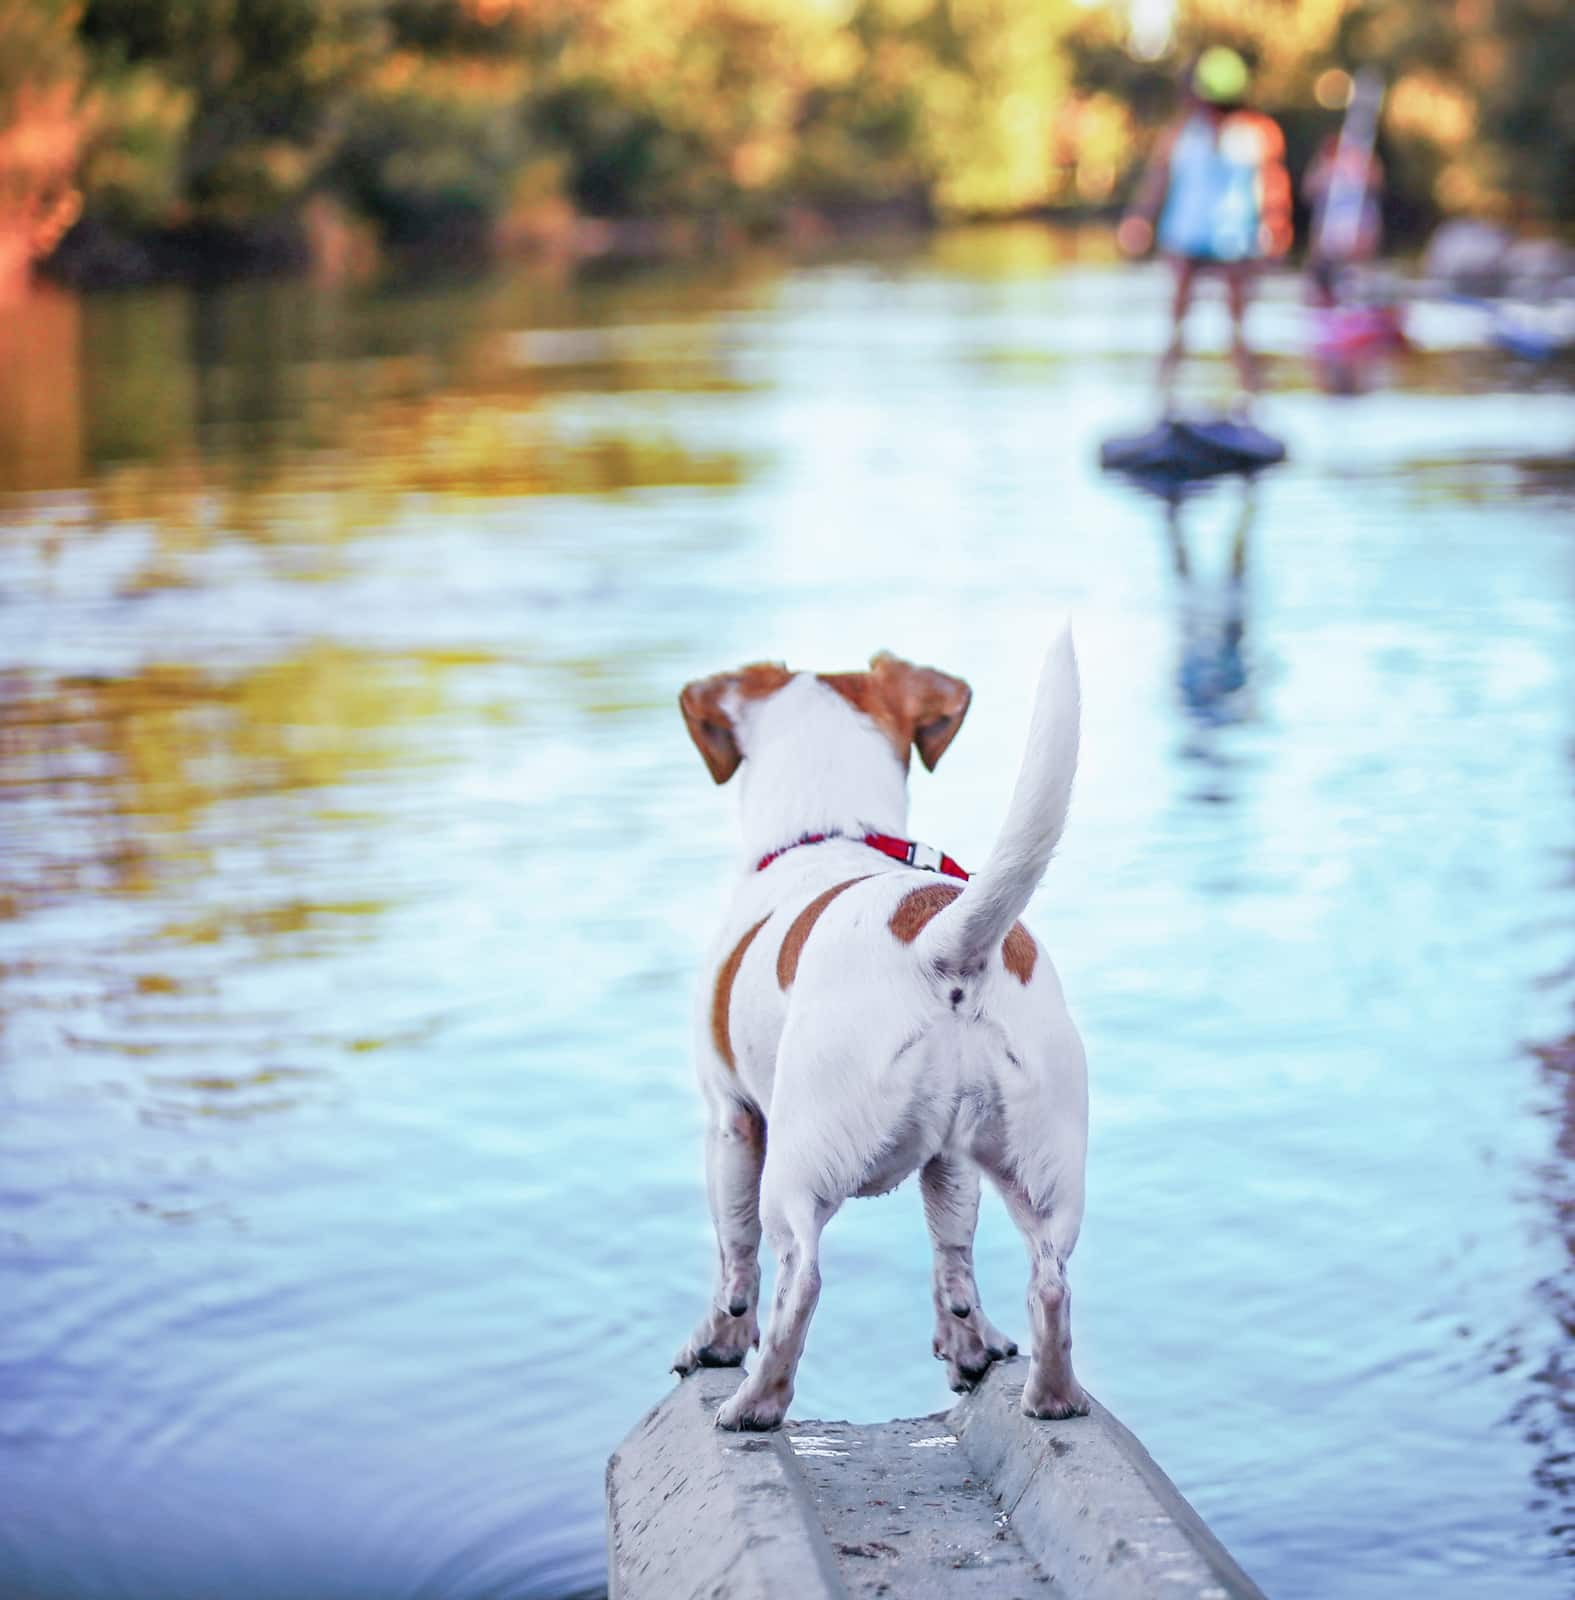 Backside of a Jack Russell terrier overlooking river with people fuzzy in the background.